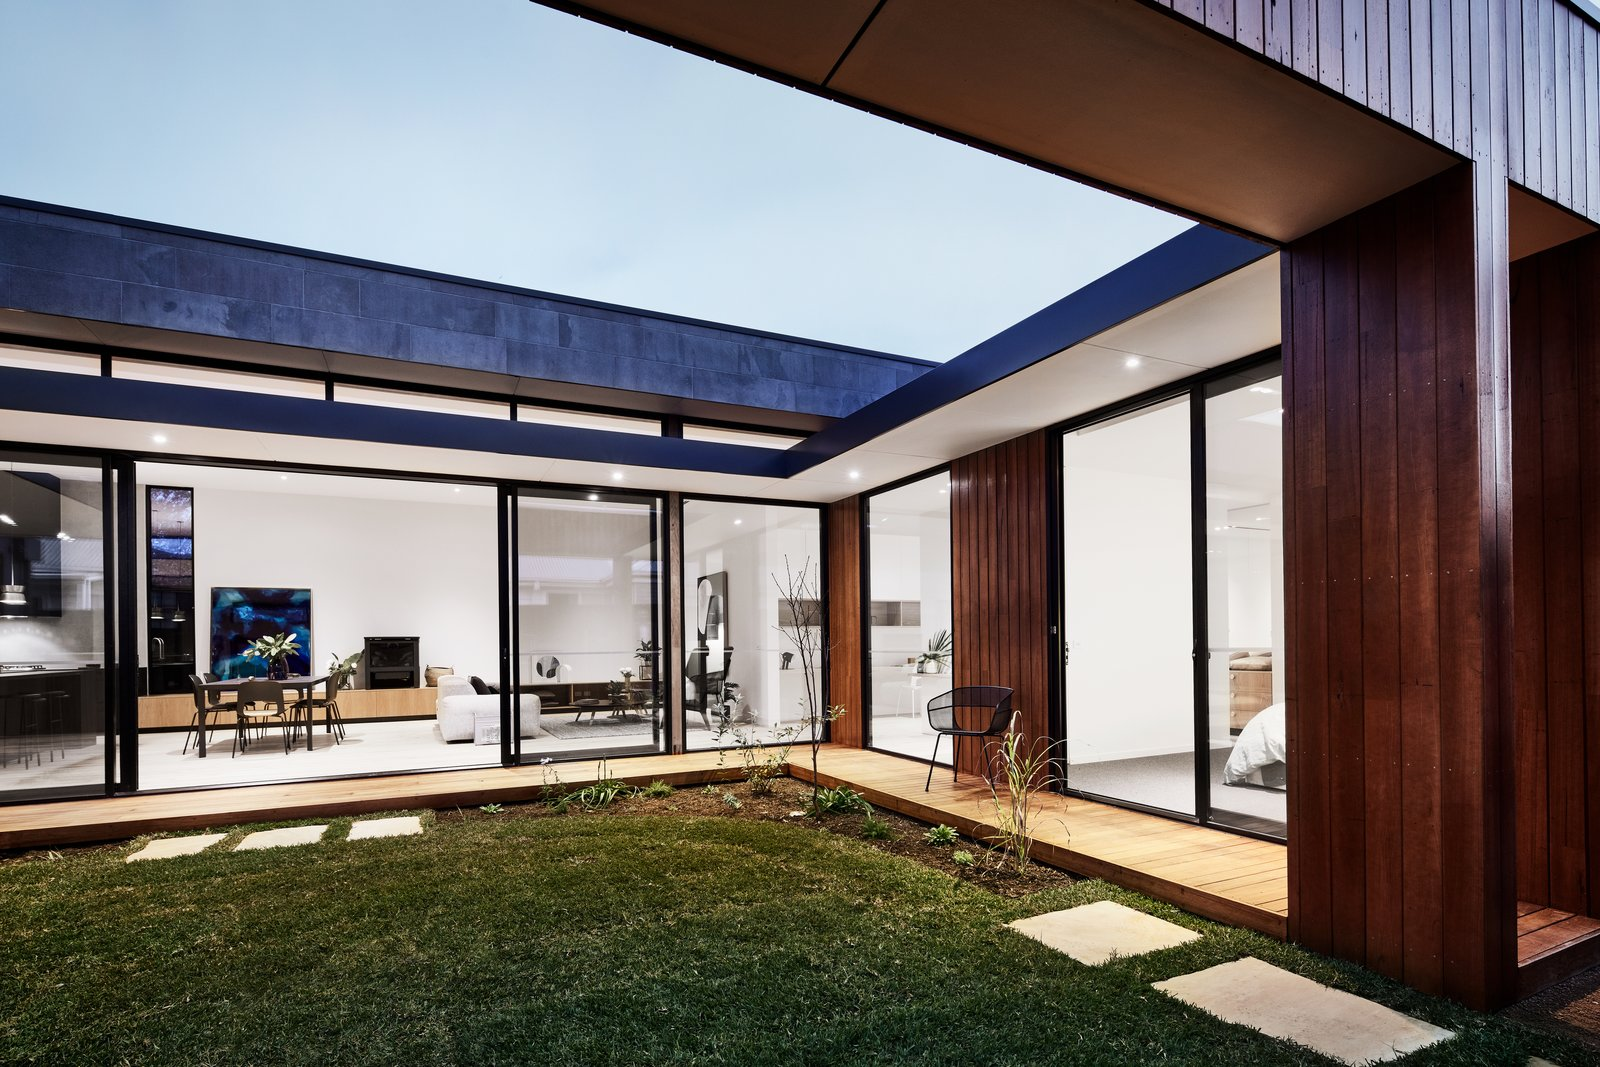 All the spaces in the house enjoy courtyard access.